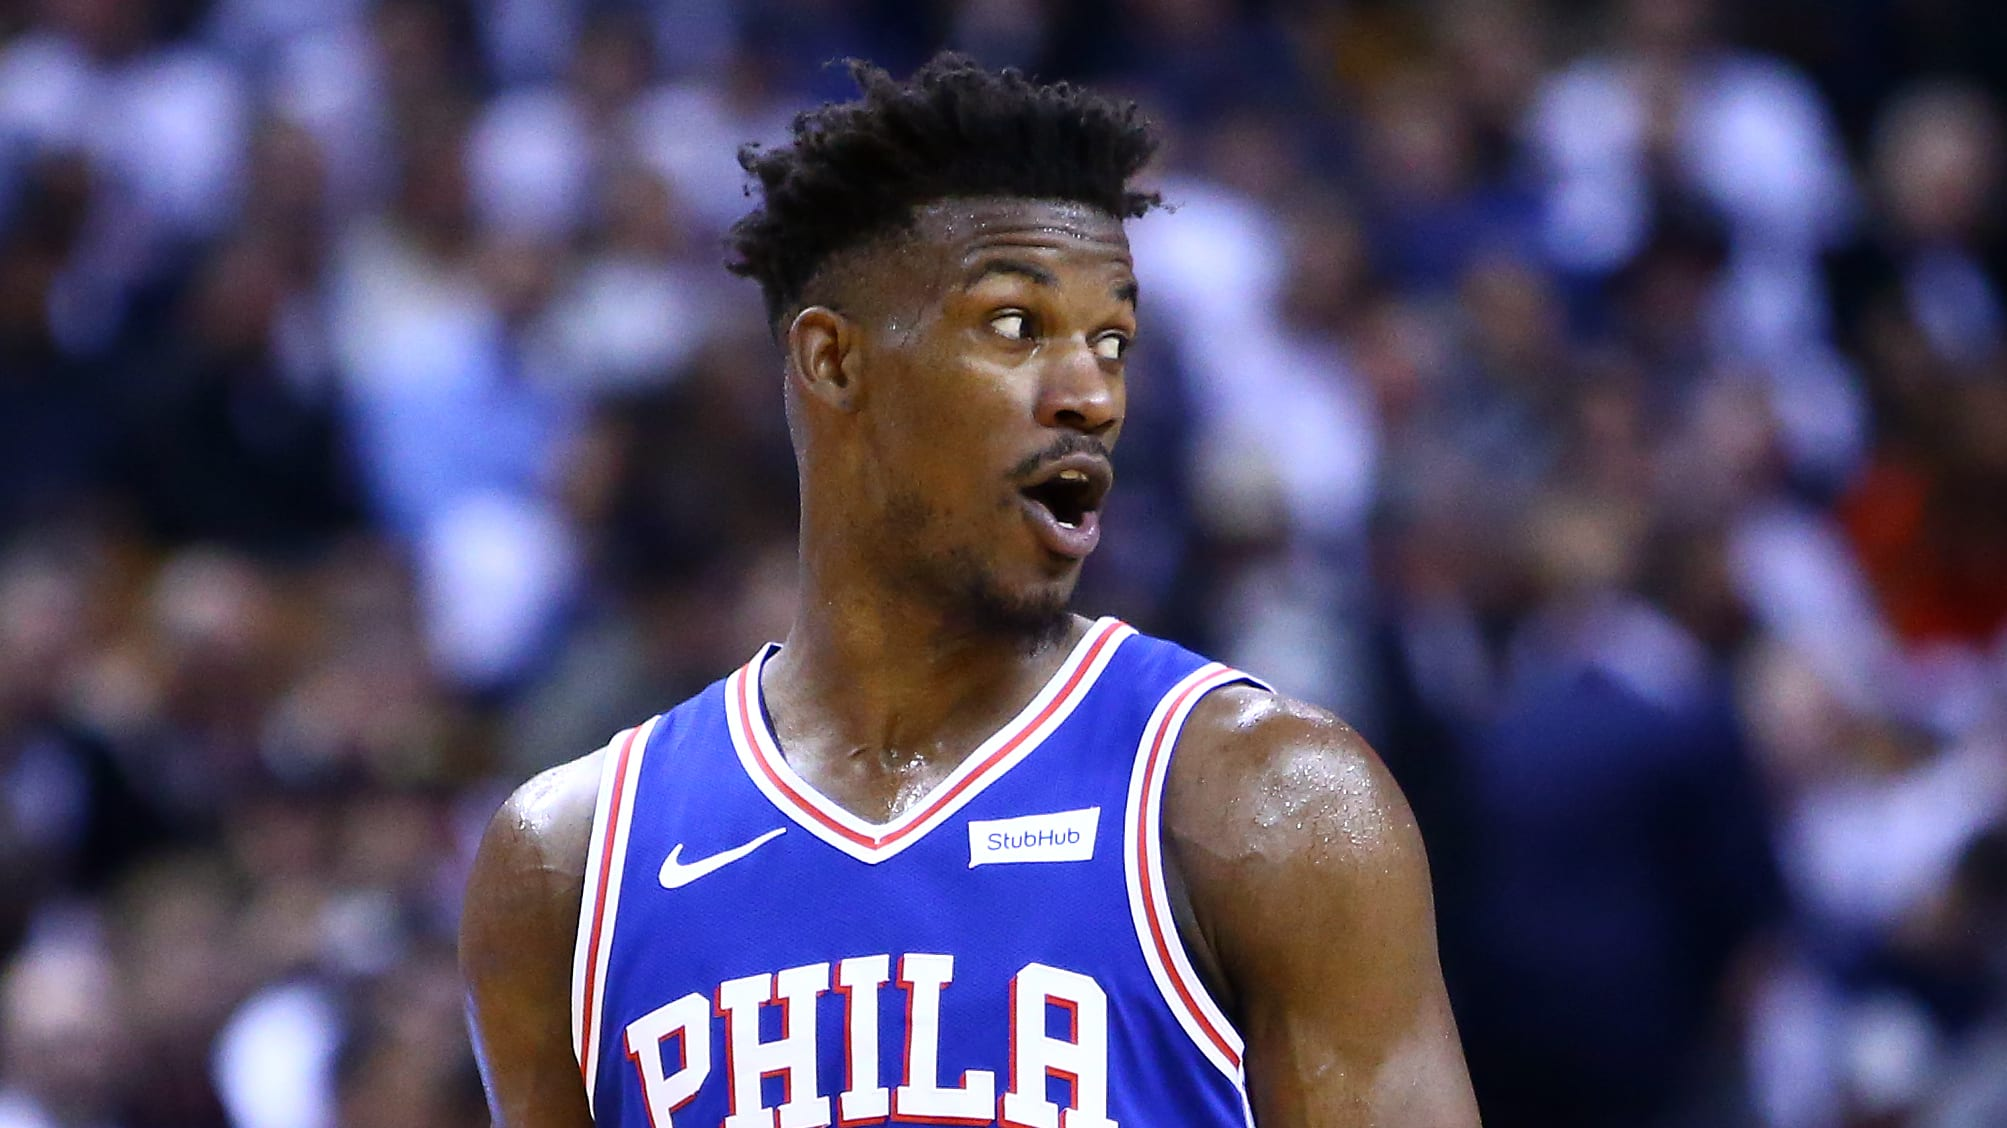 TORONTO, ON - MAY 07:  Jimmy Butler #23 of the Philadelphia 76ers reacts during Game Five of the second round of the 2019 NBA Playoffs against the Toronto Raptors at Scotiabank Arena on May 7, 2019 in Toronto, Canada.  NOTE TO USER: User expressly acknowledges and agrees that, by downloading and or using this photograph, User is consenting to the terms and conditions of the Getty Images License Agreement.  (Photo by Vaughn Ridley/Getty Images)